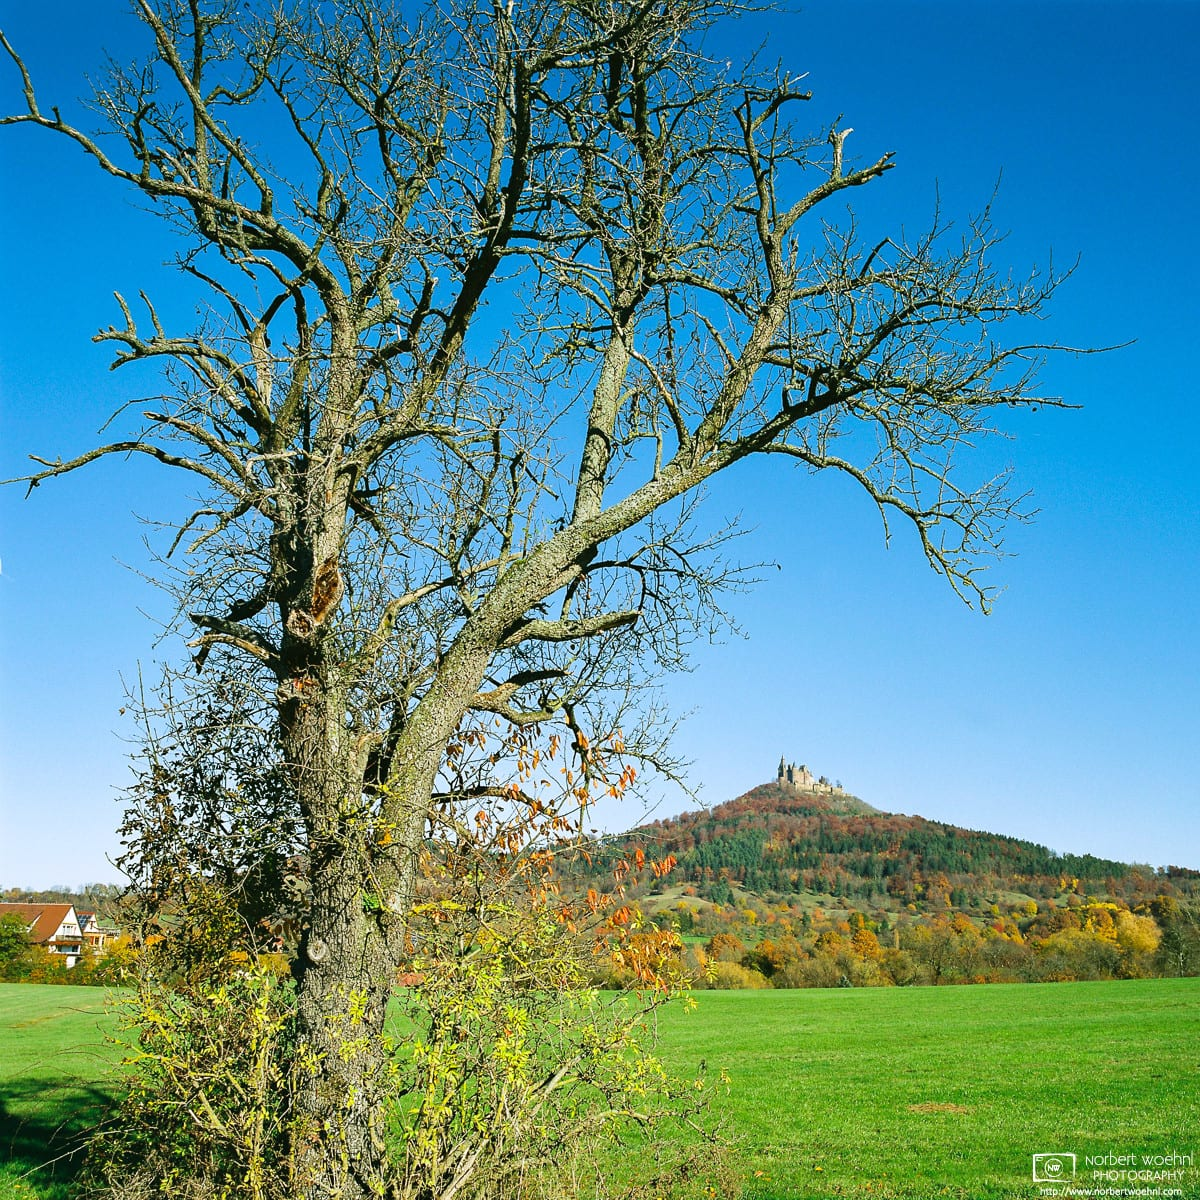 Autumn View of Hohenzollern Castle, Bisingen, Germany Photo